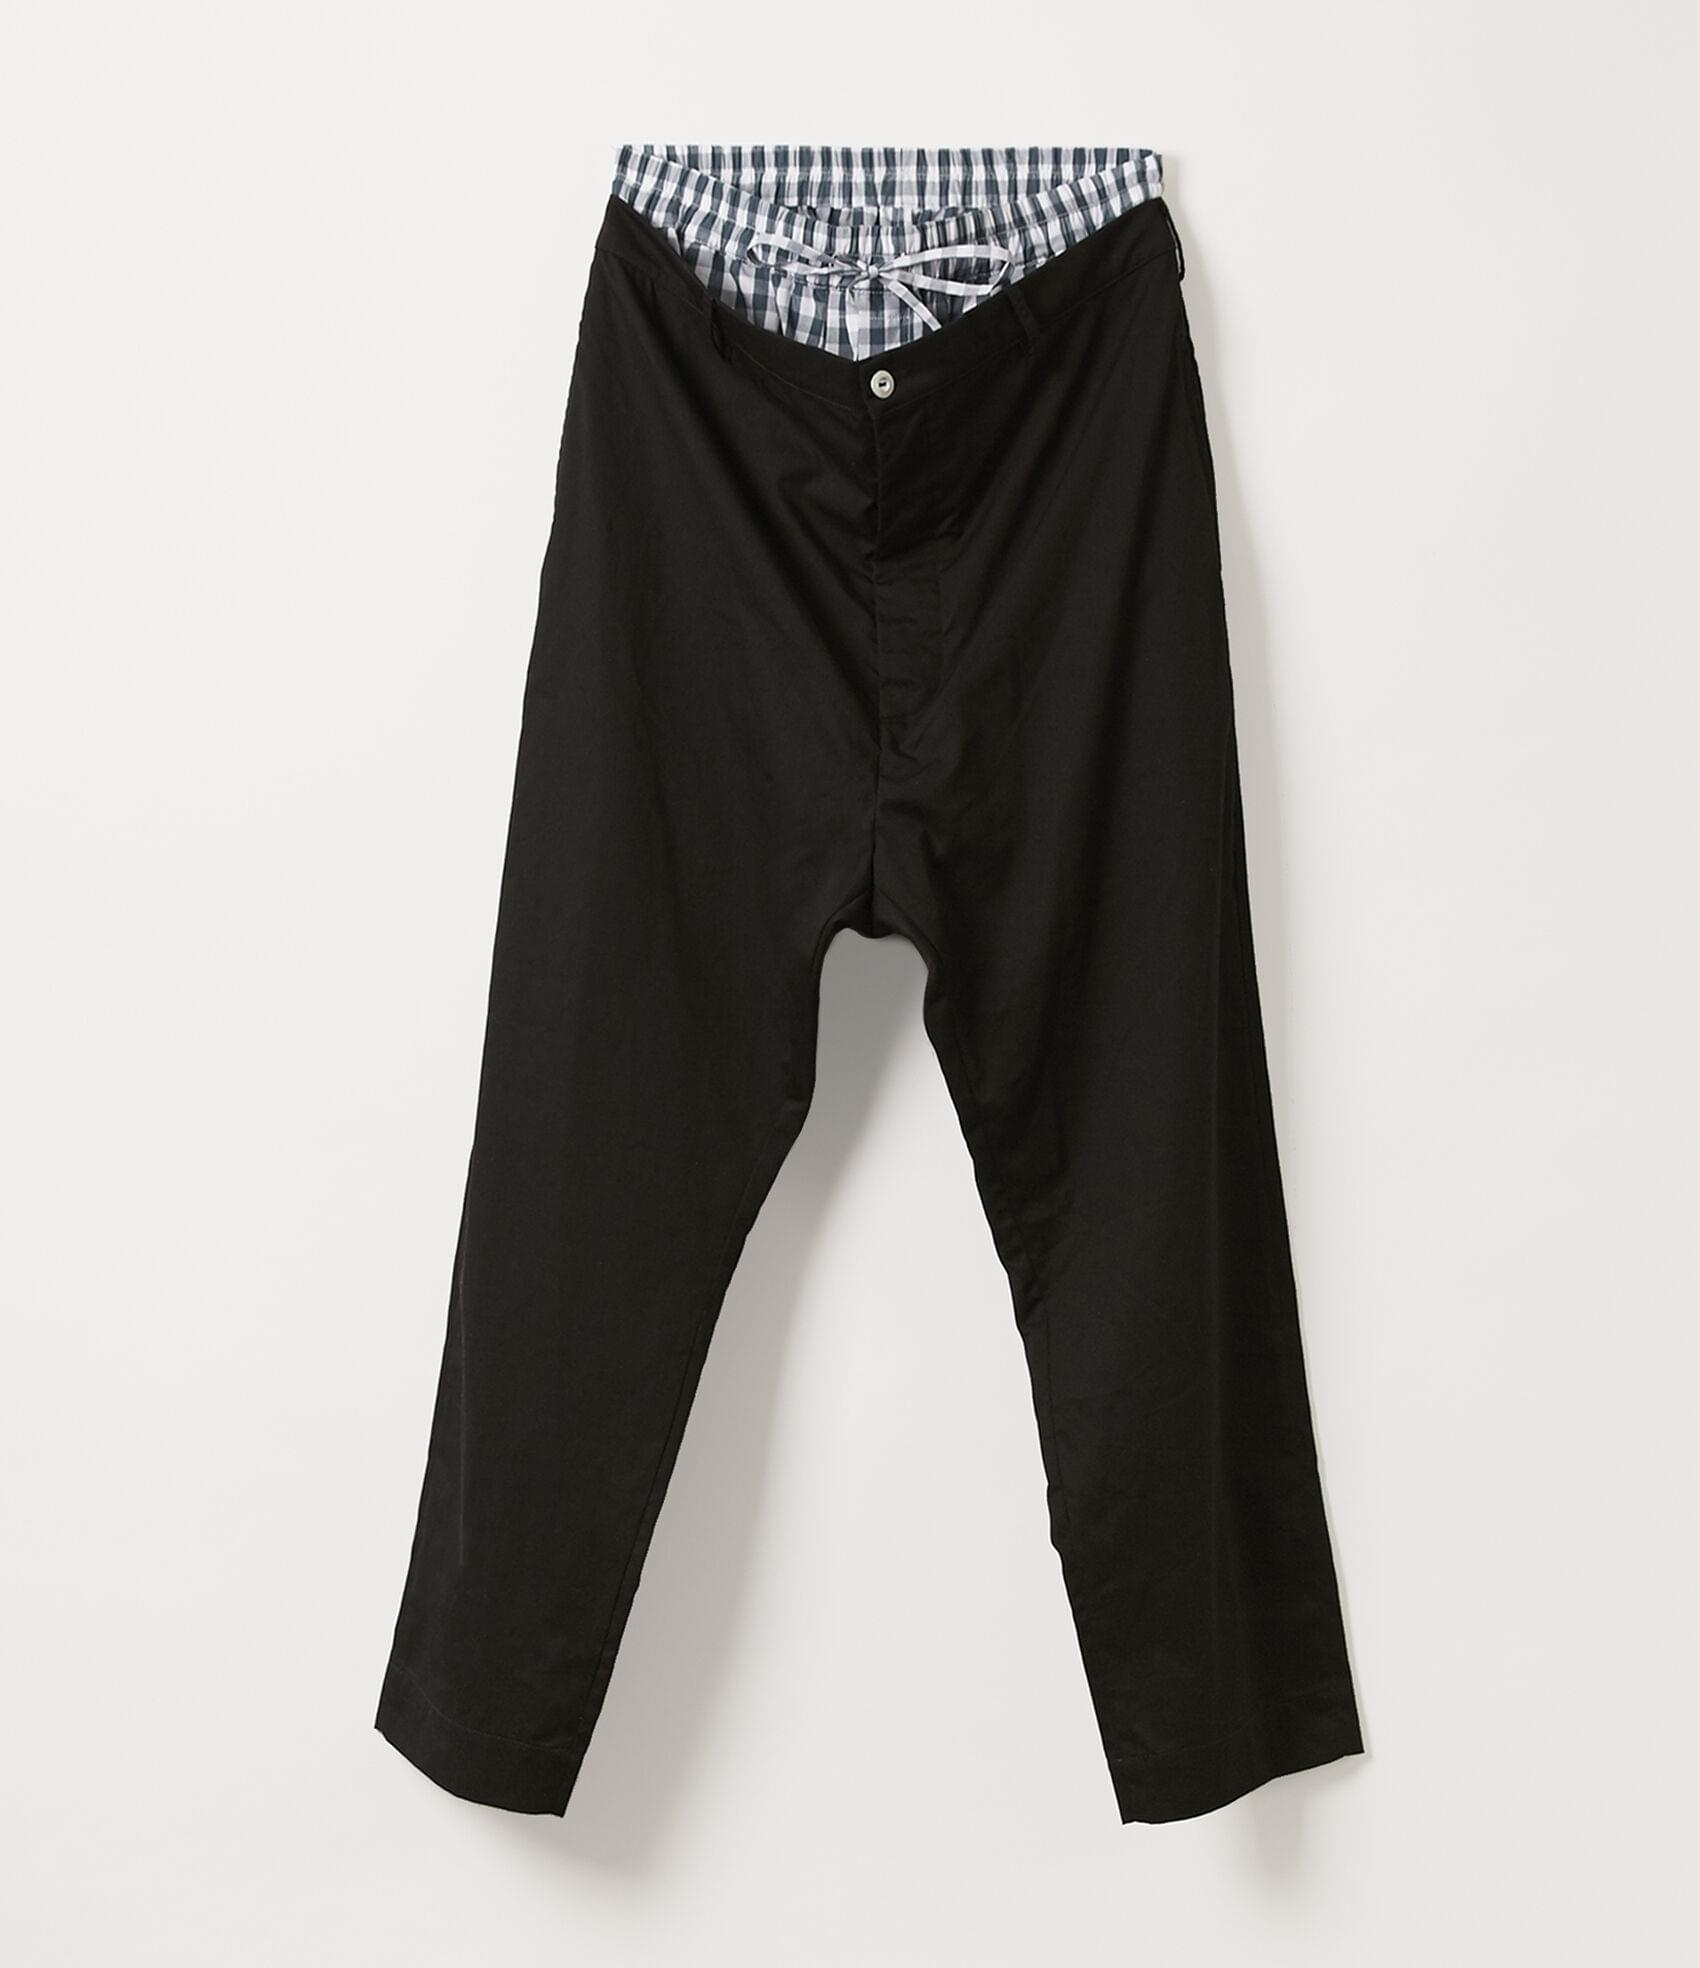 Vivienne Westwood BUILDER TROUSERS BLACK